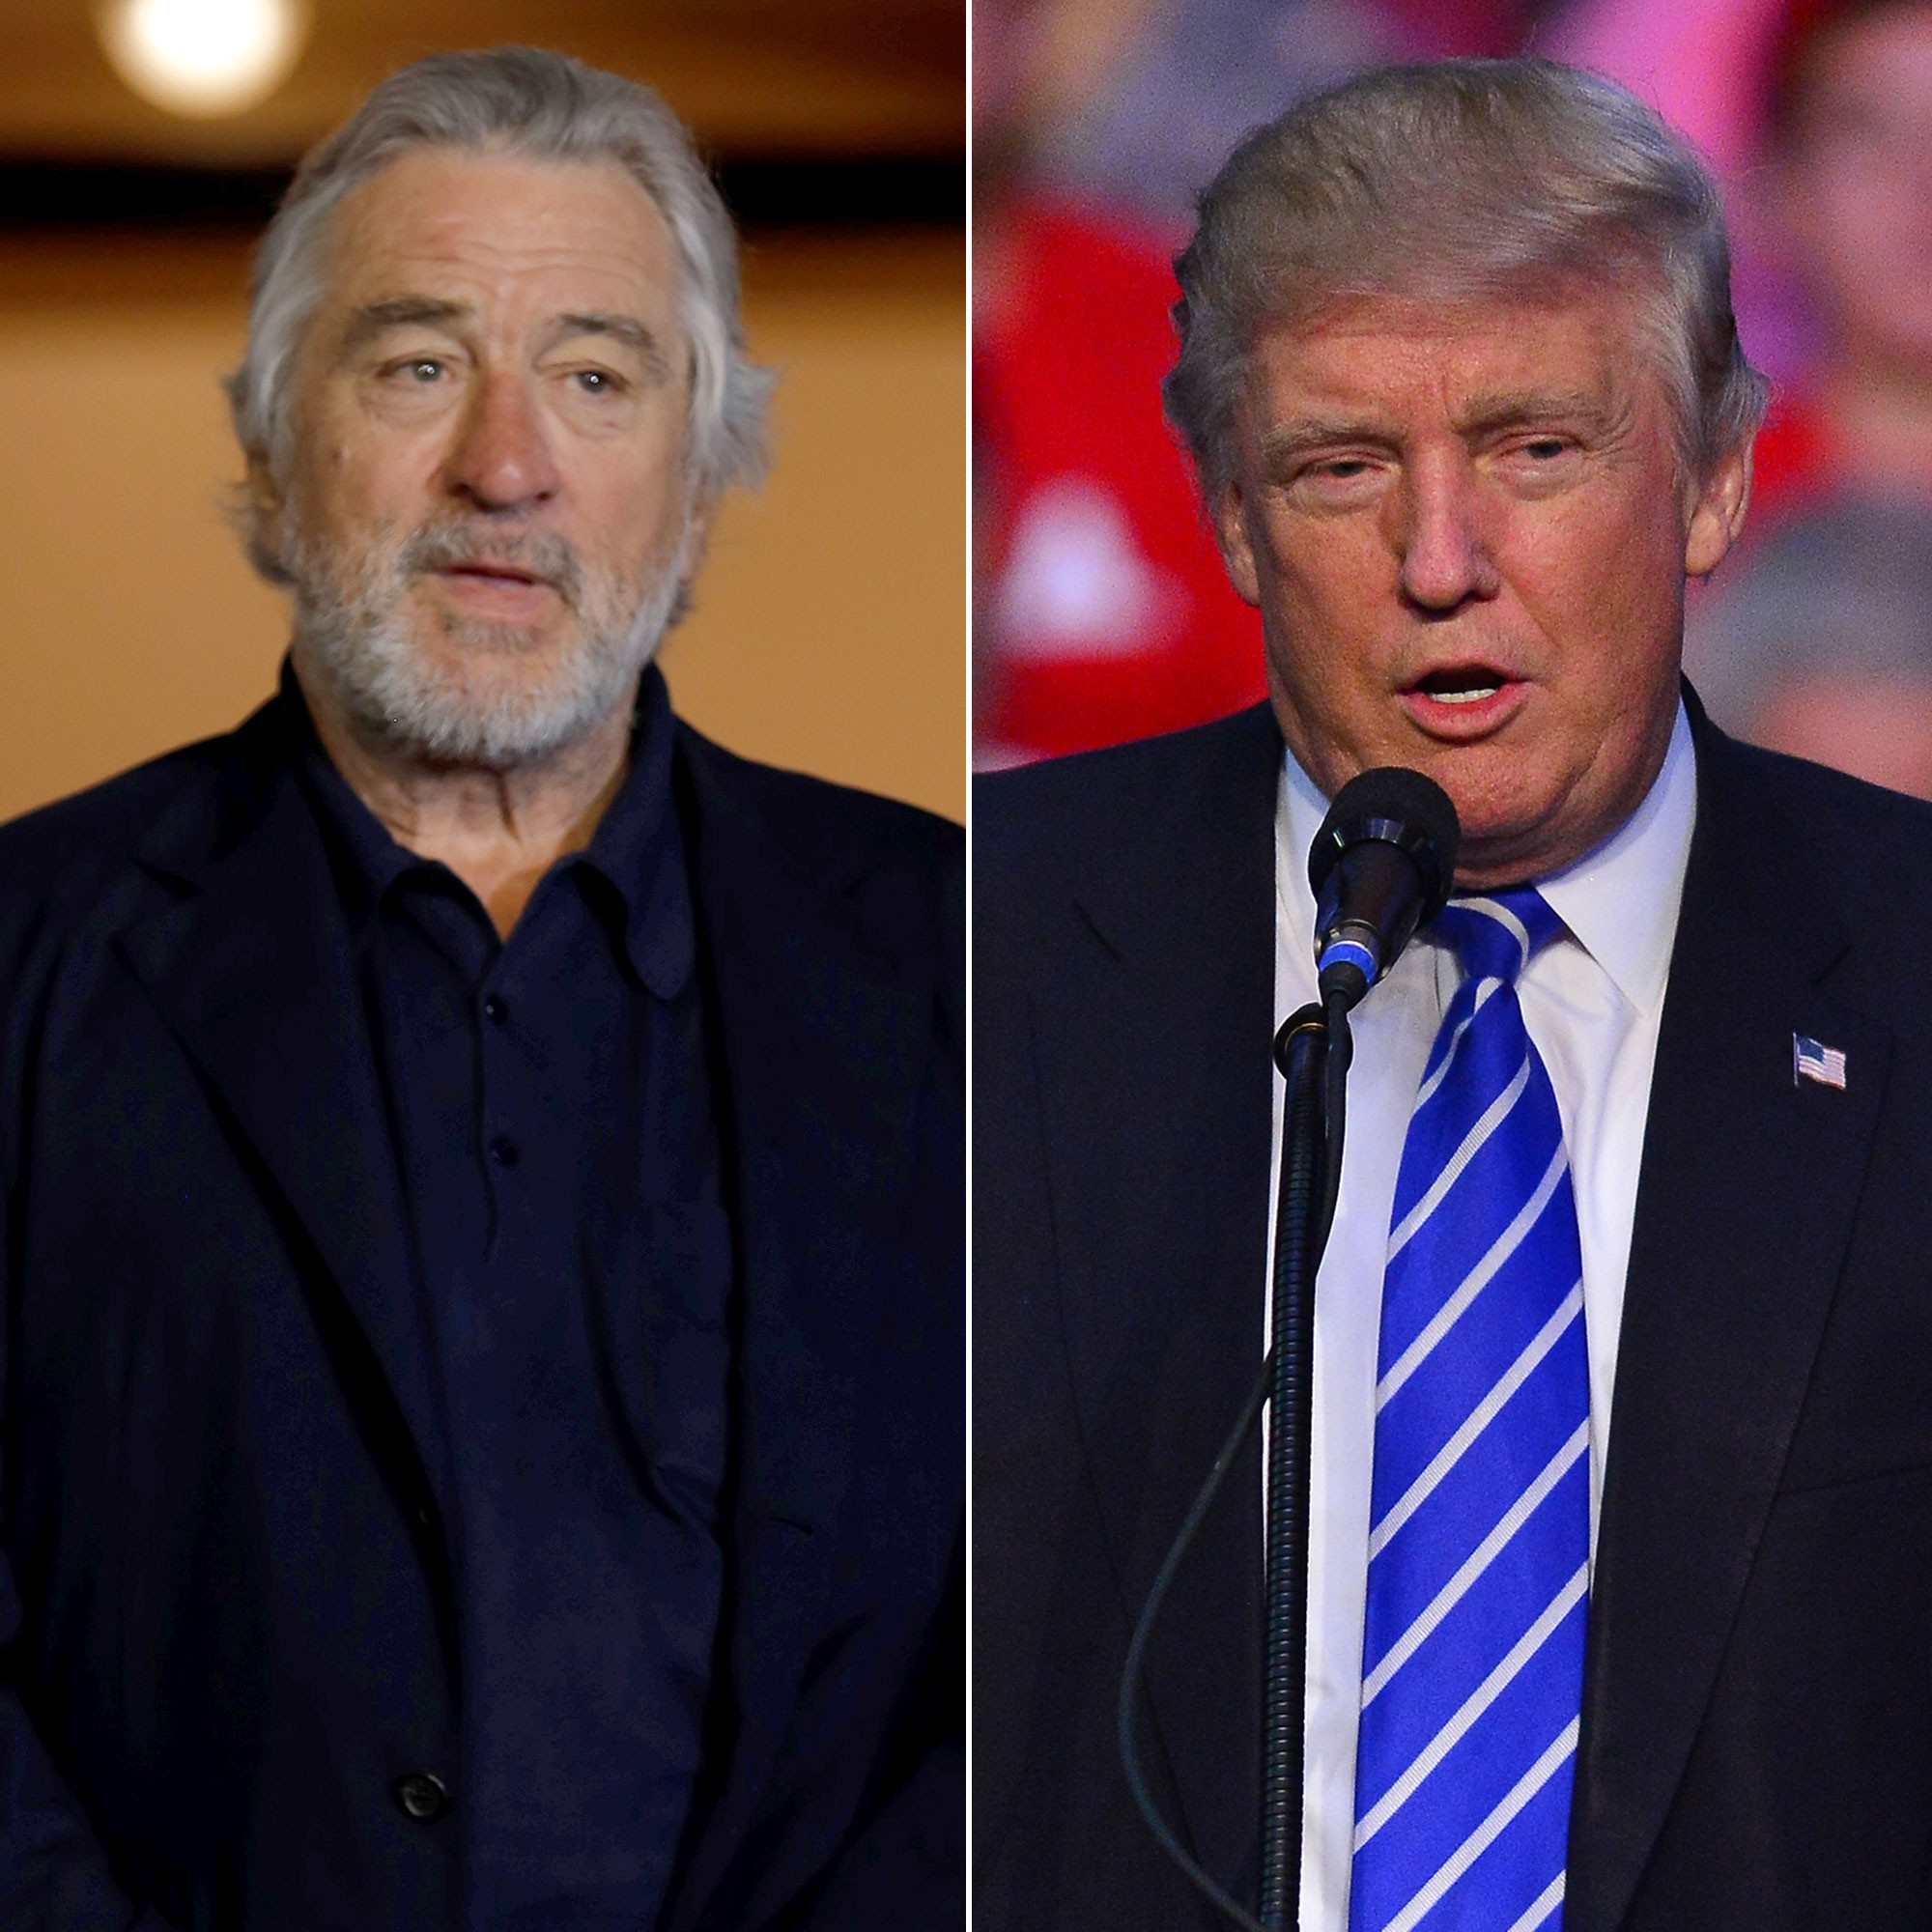 Robert De Niro says Donald Trump is banned from Nobu restaurants worldwide